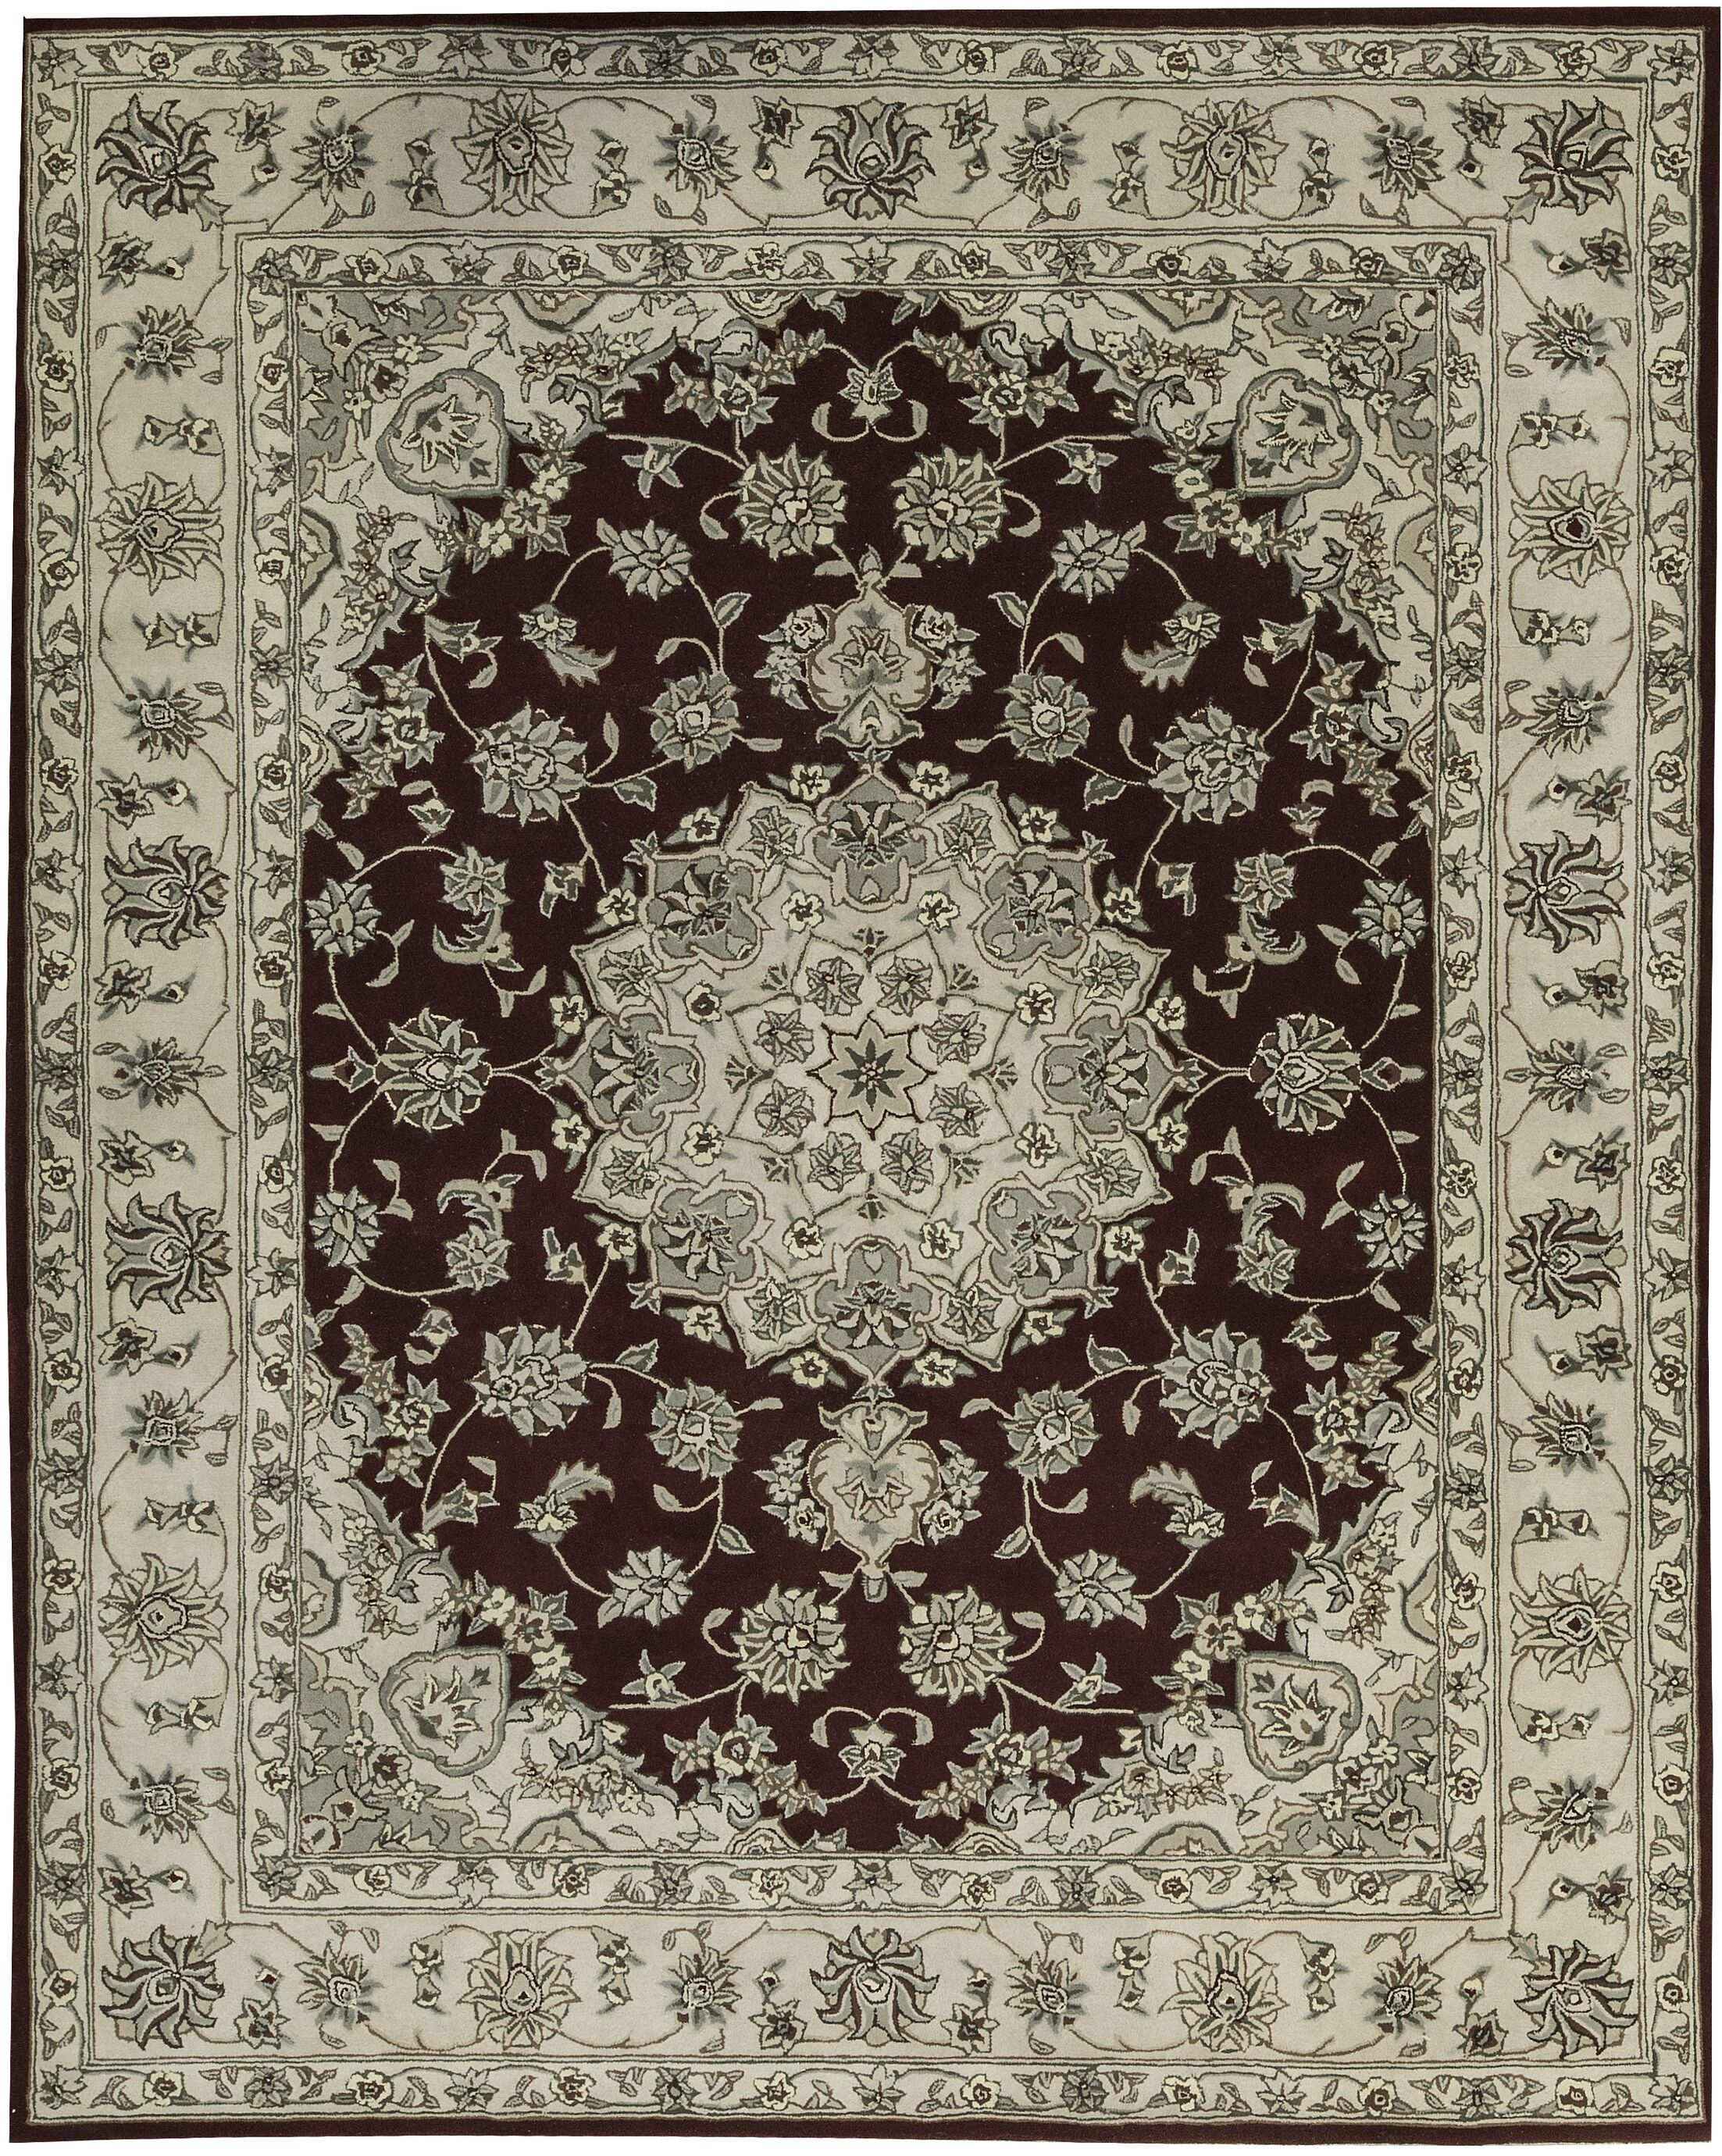 One-of-a-Kind Castilian Hand-Tufted 8' x 10' Wool/Silk Gray/Brown Area Rug